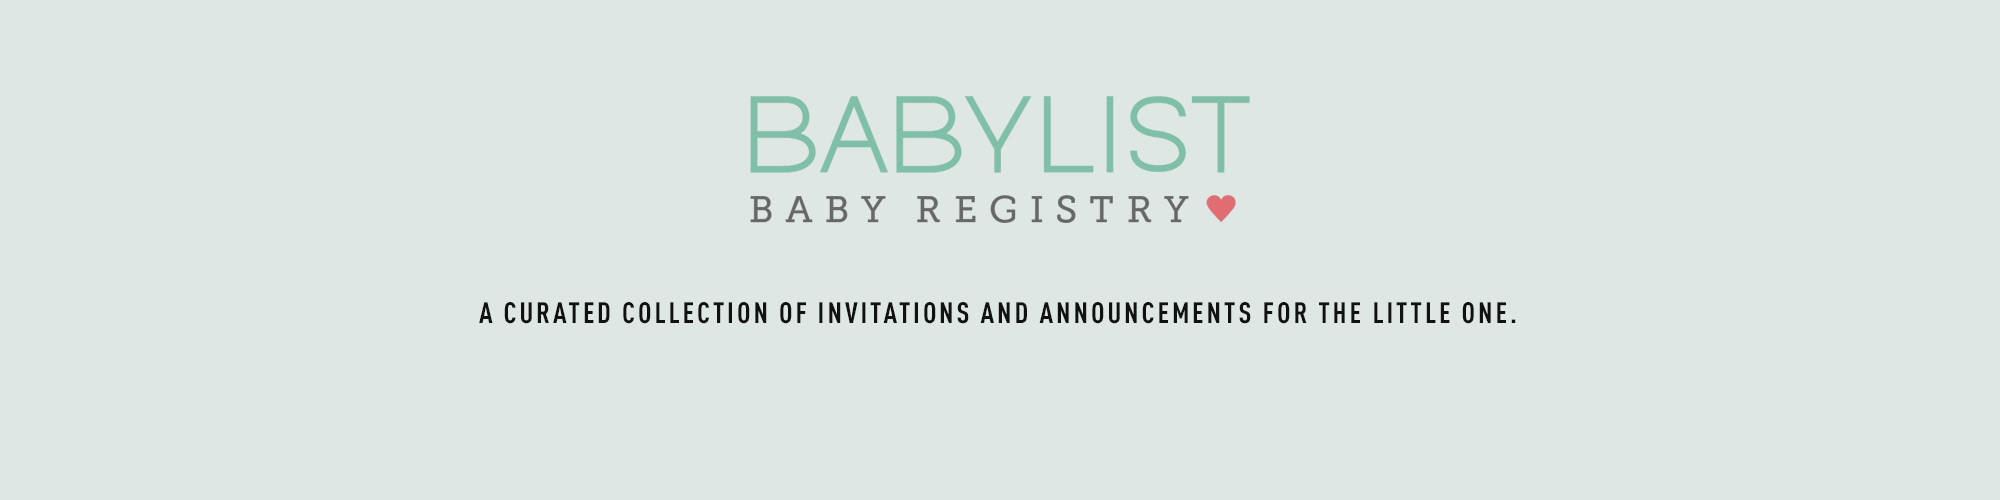 Babylist and Paperless Post